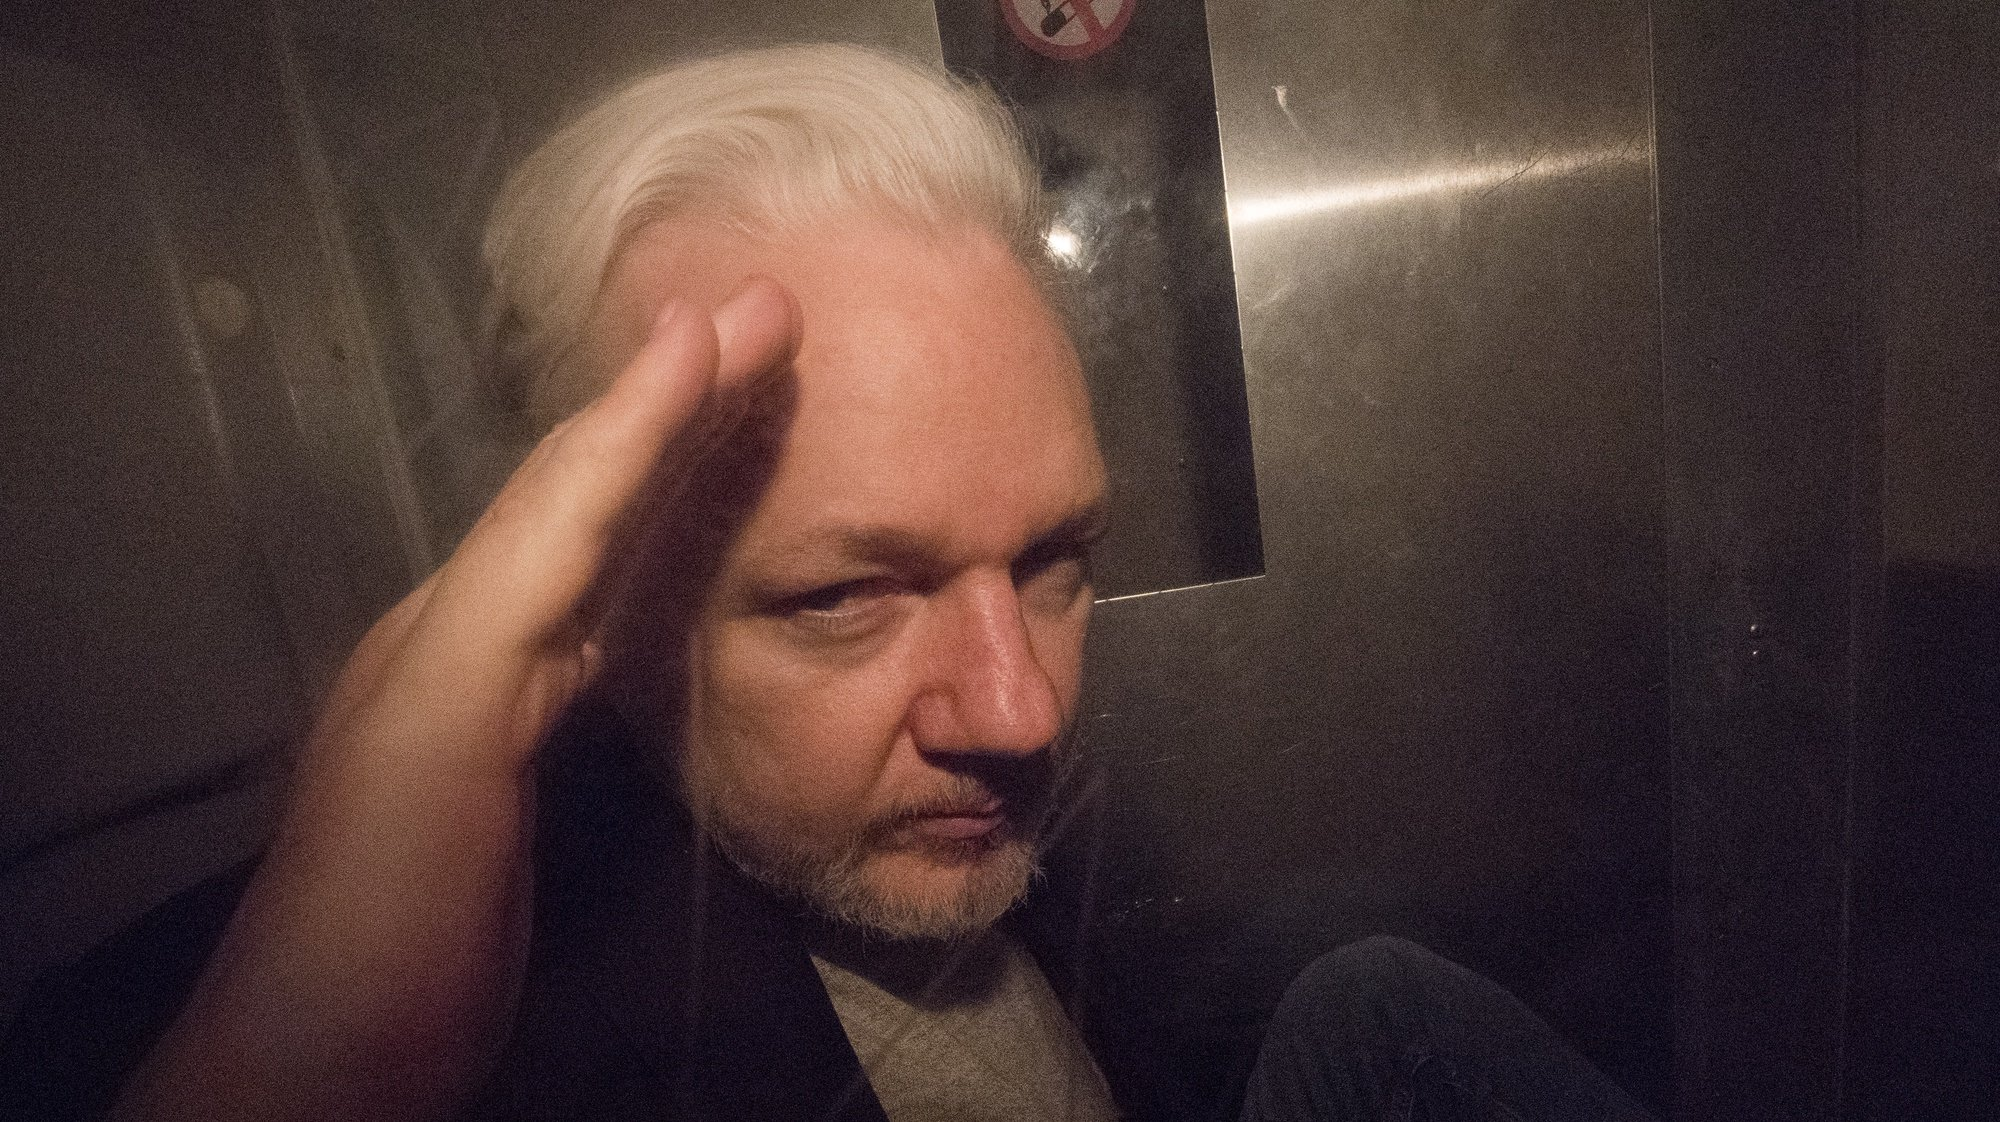 epa07540075 Wikileaks co-founder Julian Assange, in a prison van, as he leaves Southwark Crown Court in London, Britain, 01 May 2019. The Wikileaks co-founder Julian Assange has been sentenced to 50 week in prison for breaching his bail conditions. Assange was found guilty of breaching the Bail Act in April after his arrest after spending seven year in the Ecuadorian Embassy in London.  EPA/NEIL HALL